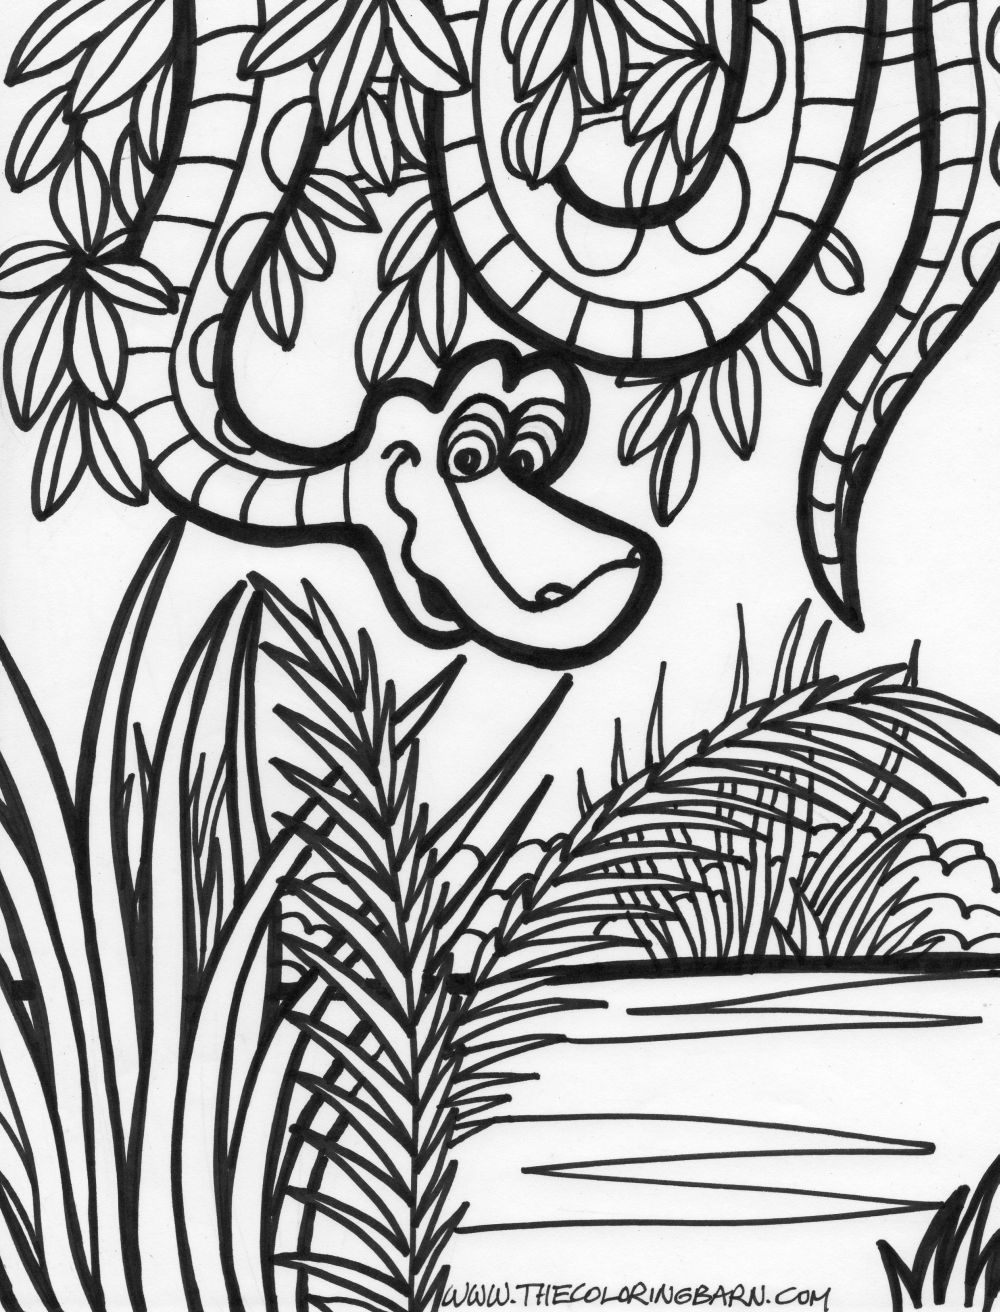 Jungle Coloring Pages Jungle Coloring Pages Animal Coloring Pages Bird Coloring Pages